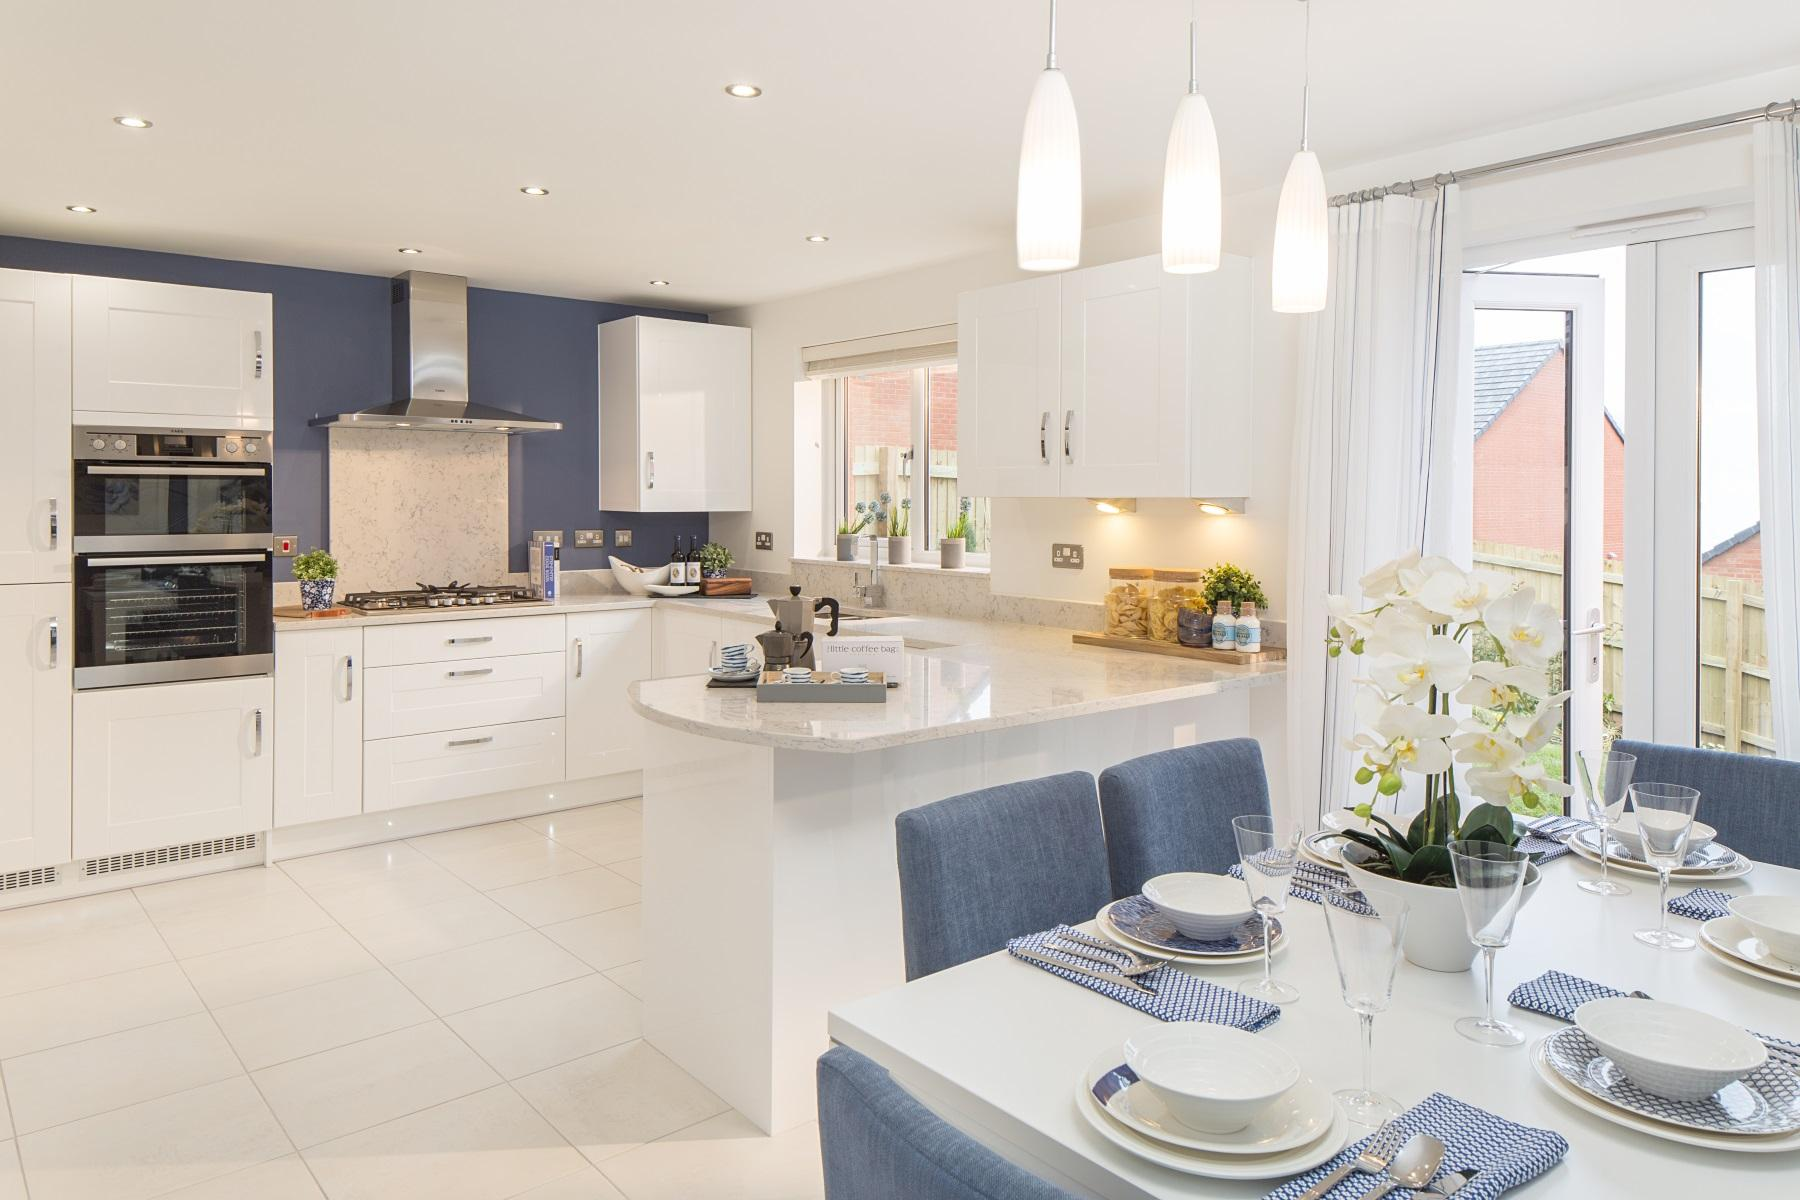 TW Exeter - Hele Park - Midford example kitchen